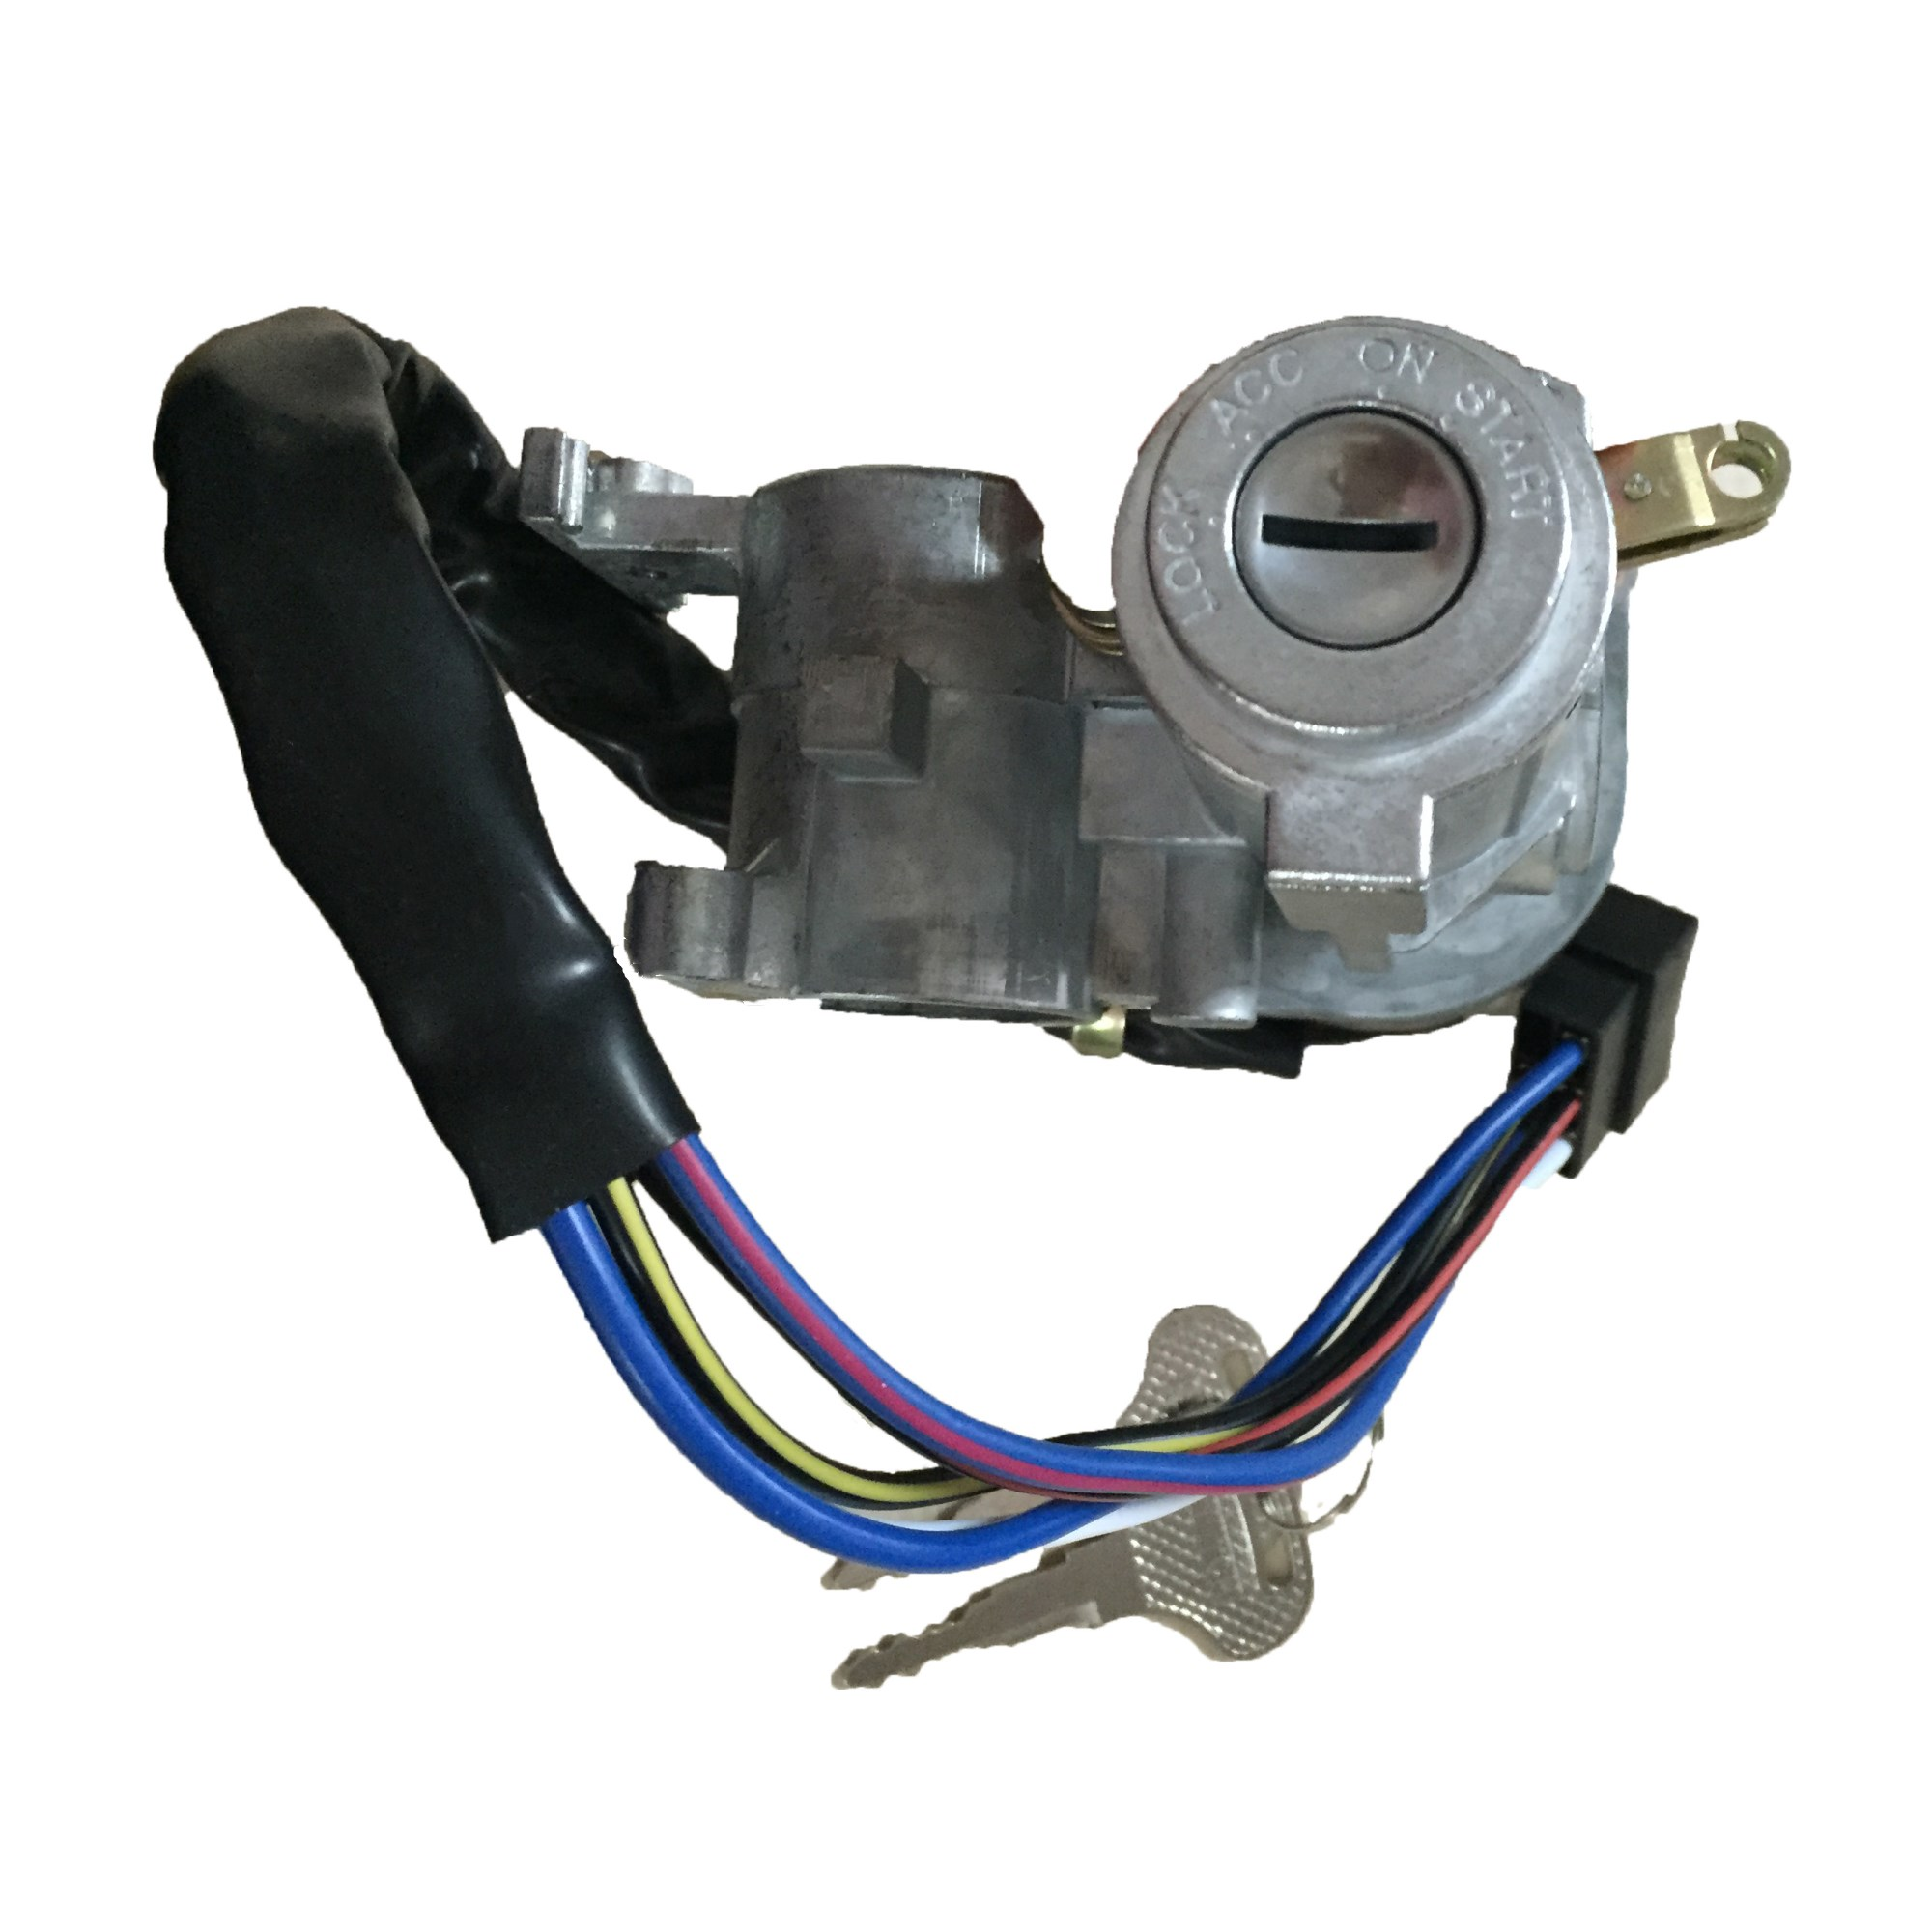 medium resolution of ignition starter switch for mitsubishi canter fe114 111 5p wire mb098733 in car switches relays from automobiles motorcycles on aliexpress com alibaba